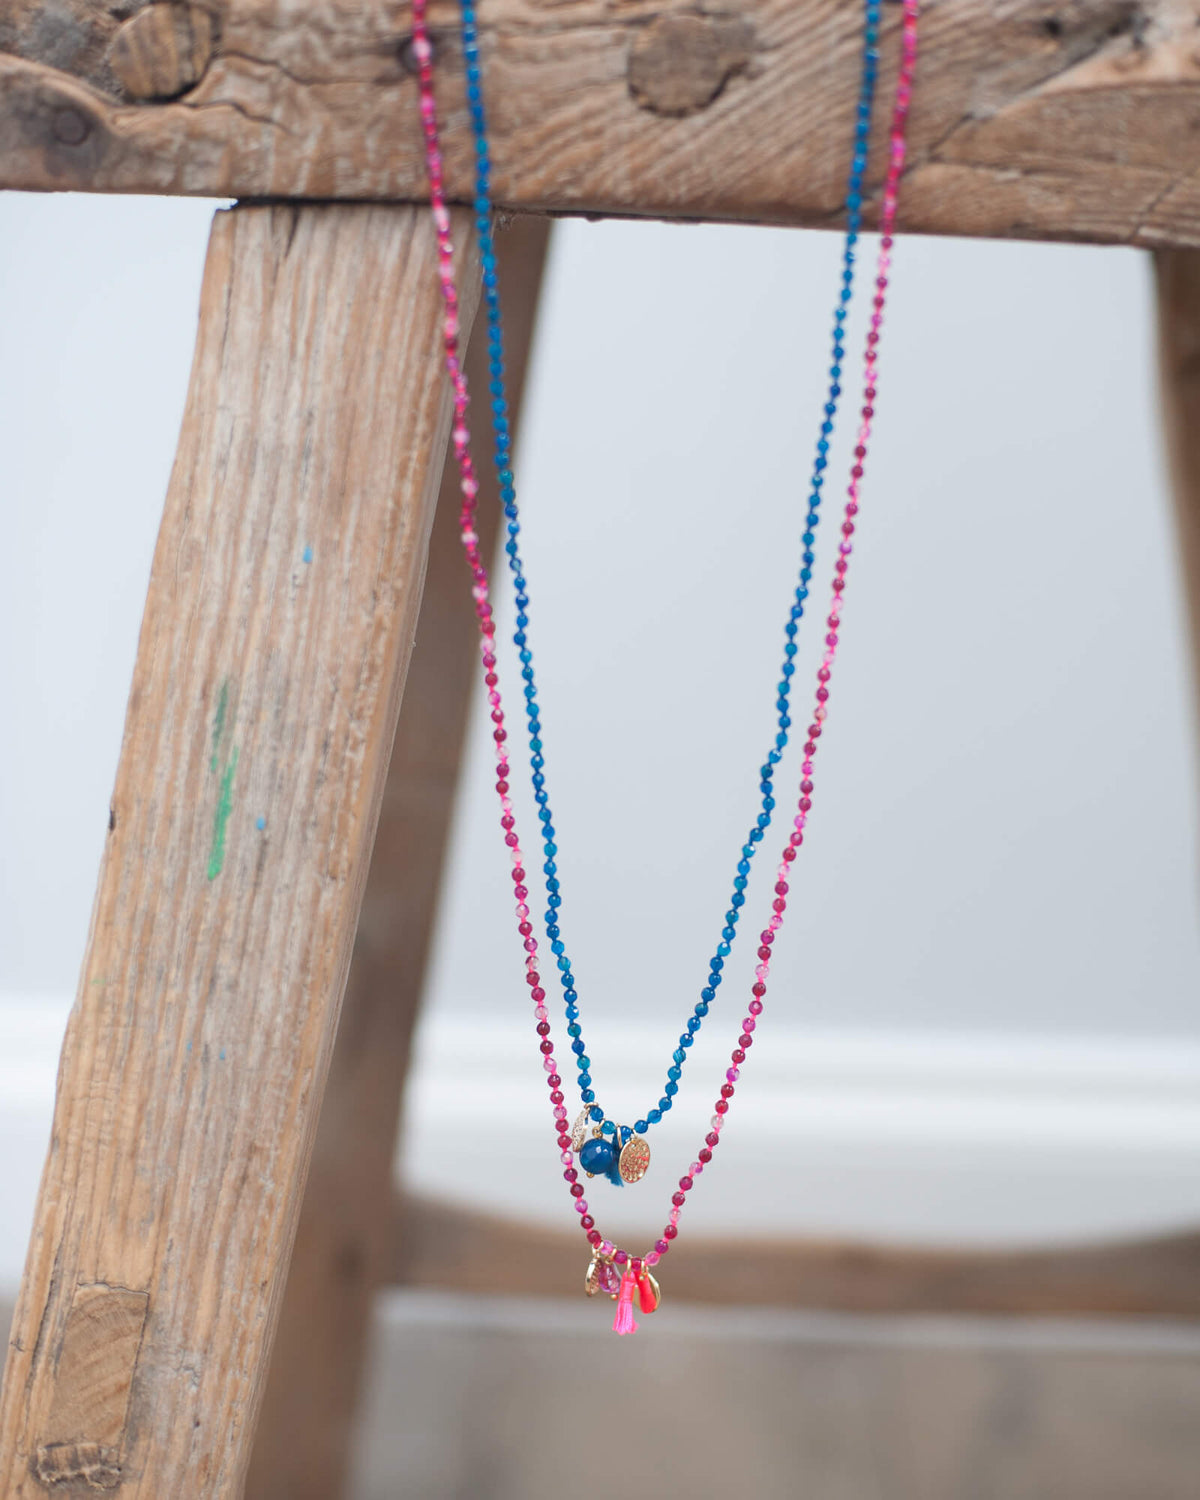 2250 Long necklace with charms and tassels in pink